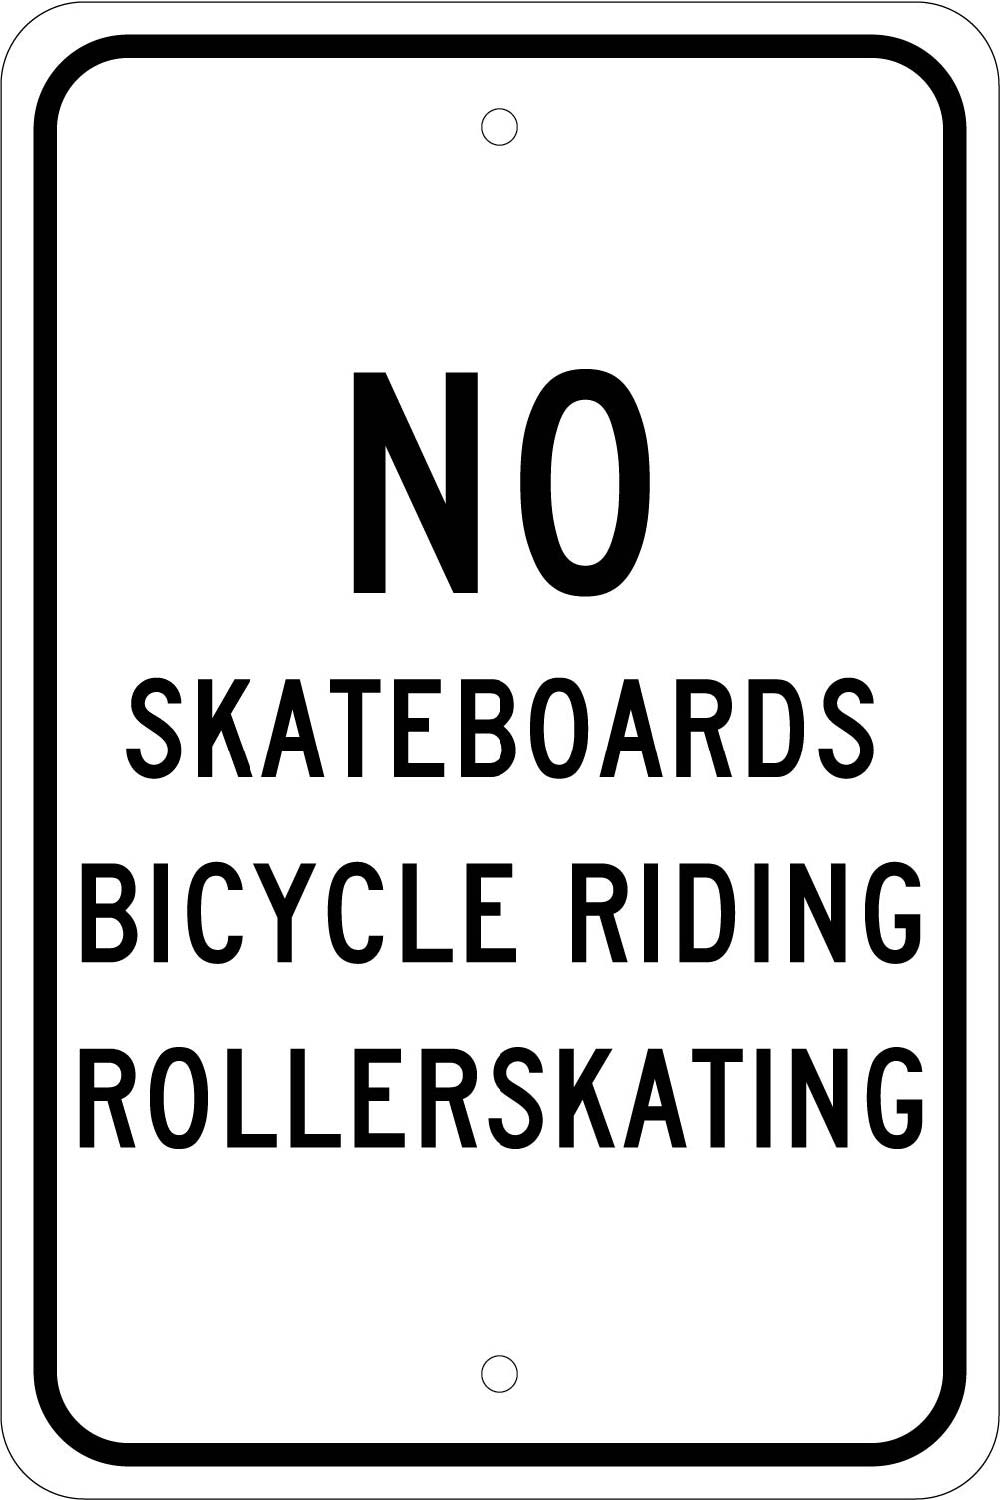 No Skateboards Bicycle Riding Rollerskating Sign